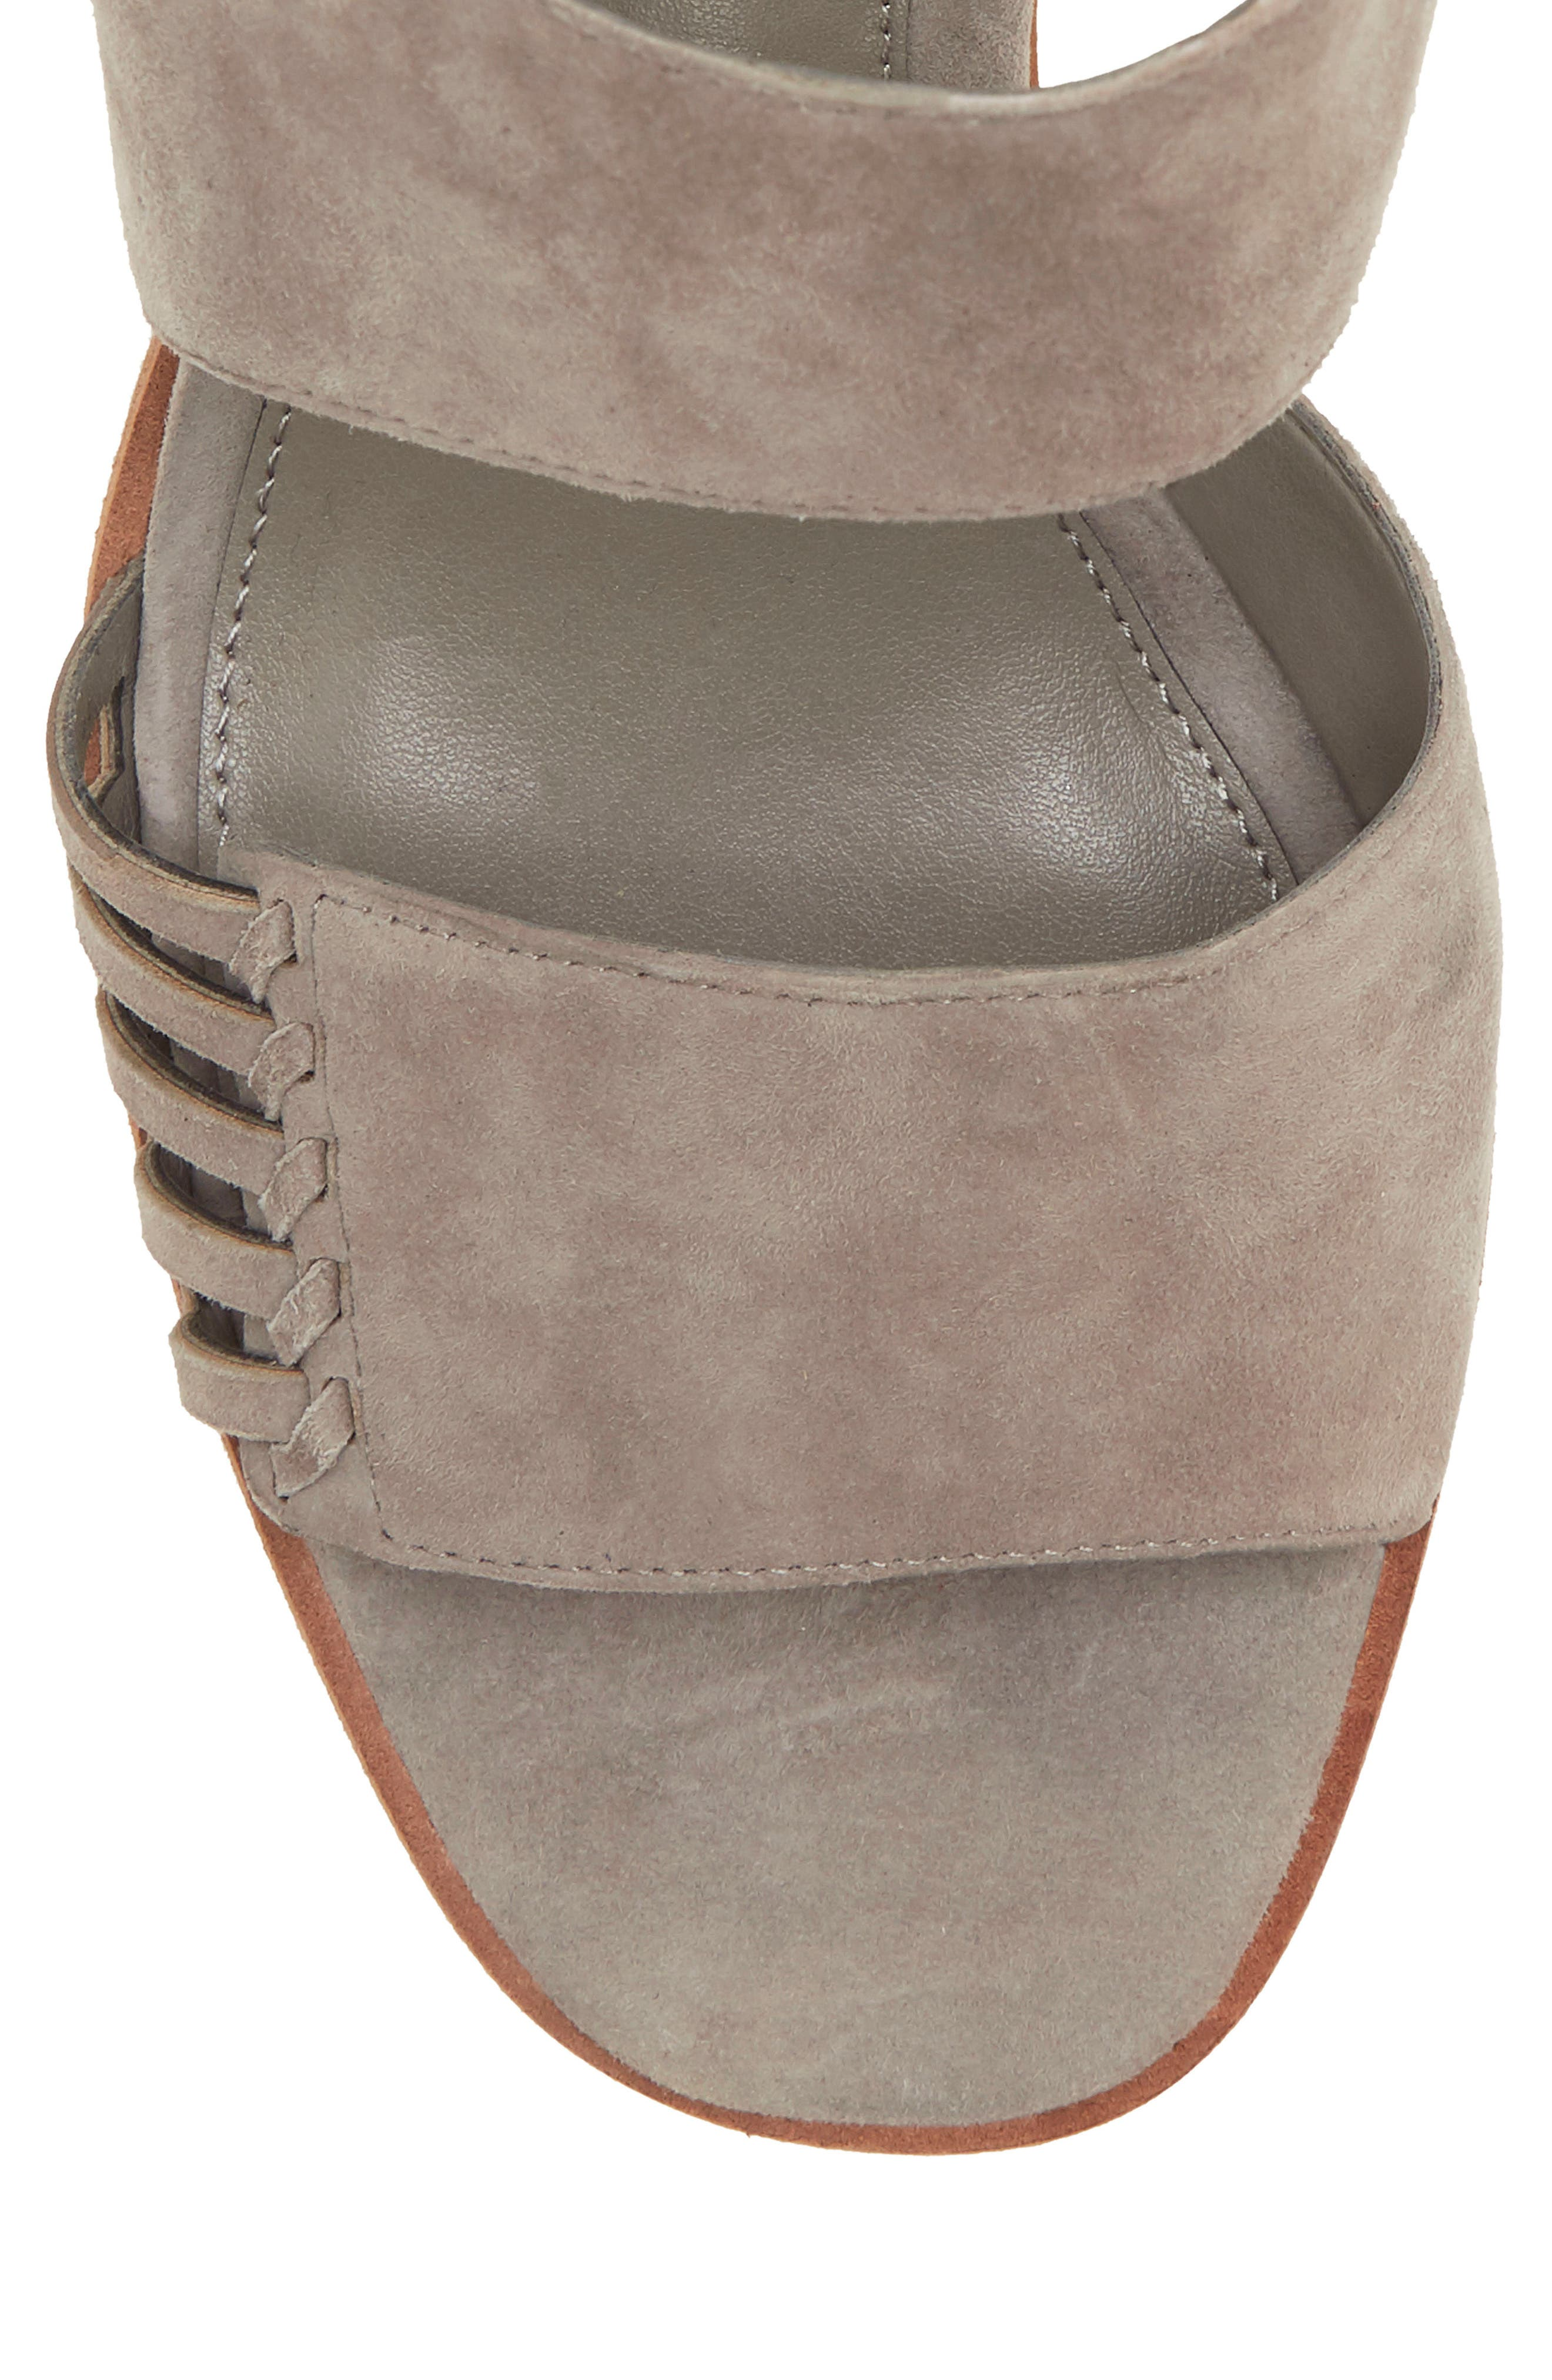 VINCE CAMUTO, Karmelo Slingback Sandal, Alternate thumbnail 8, color, STORM GREY LEATHER